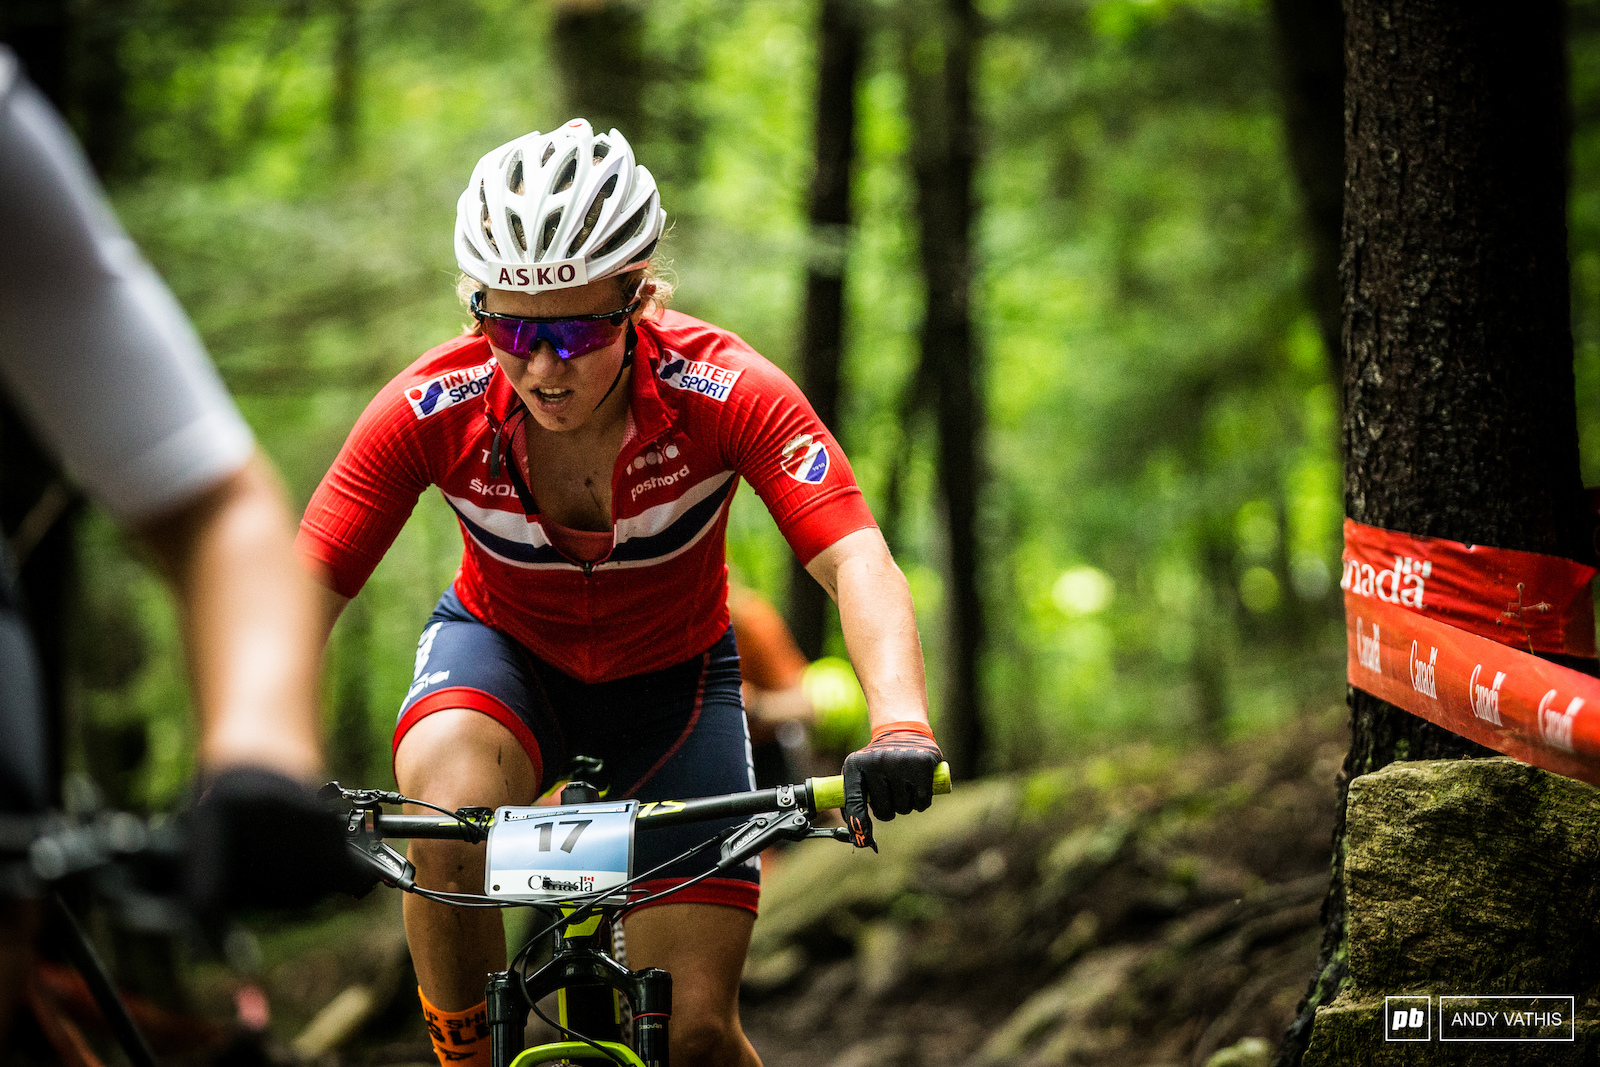 Helen Marie Fossesholm fought her way up the ranks into third. Not an easy feat on this course and with such few laps.